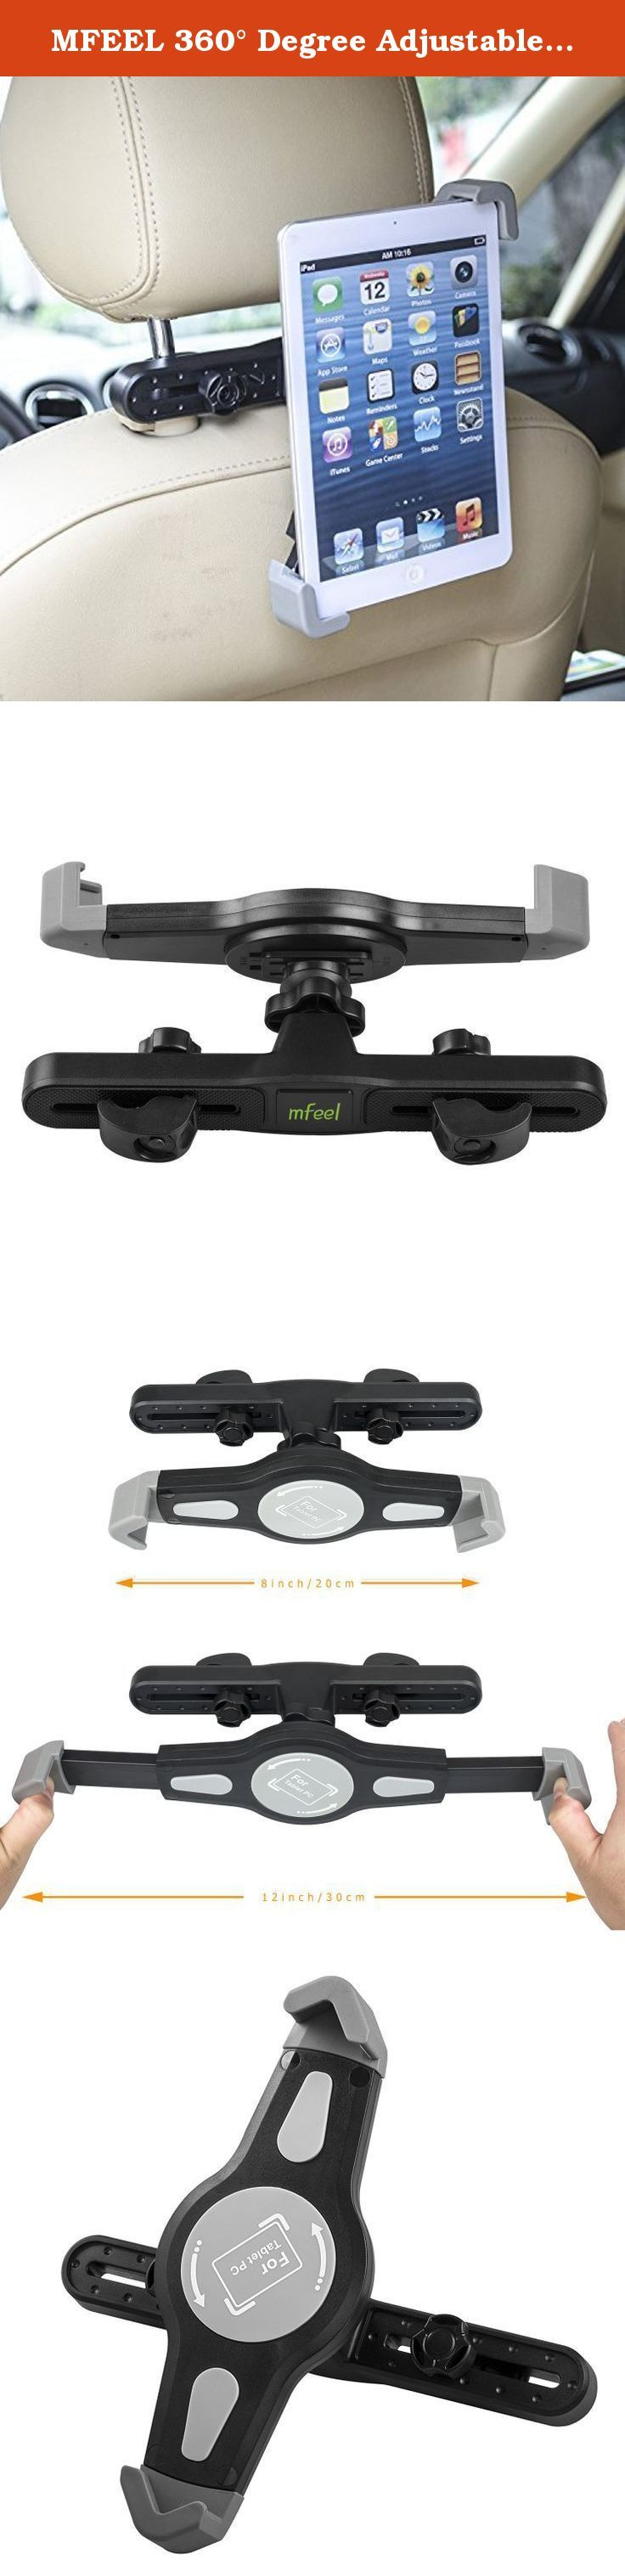 MFEEL 360° Degree Adjustable Rotating Headrest Car Seat Mount Holder for Apple iPad Air / iPad 4 / iPad 3 / iPad 2 / iPad Mini2 / iPad Mini and other Tablet PC GPS Car Headrest Mount Holder - Black. This MFEEL iPad Headrest Holder will make travelling with young children so much easier. -Simple and Easy To Fit to the car headrest and adjust for suitable viewing -Clip it for back on the car's pillow. -Access to all iPad Ports for charger and headphones. -Pocket on back of holder for cable...